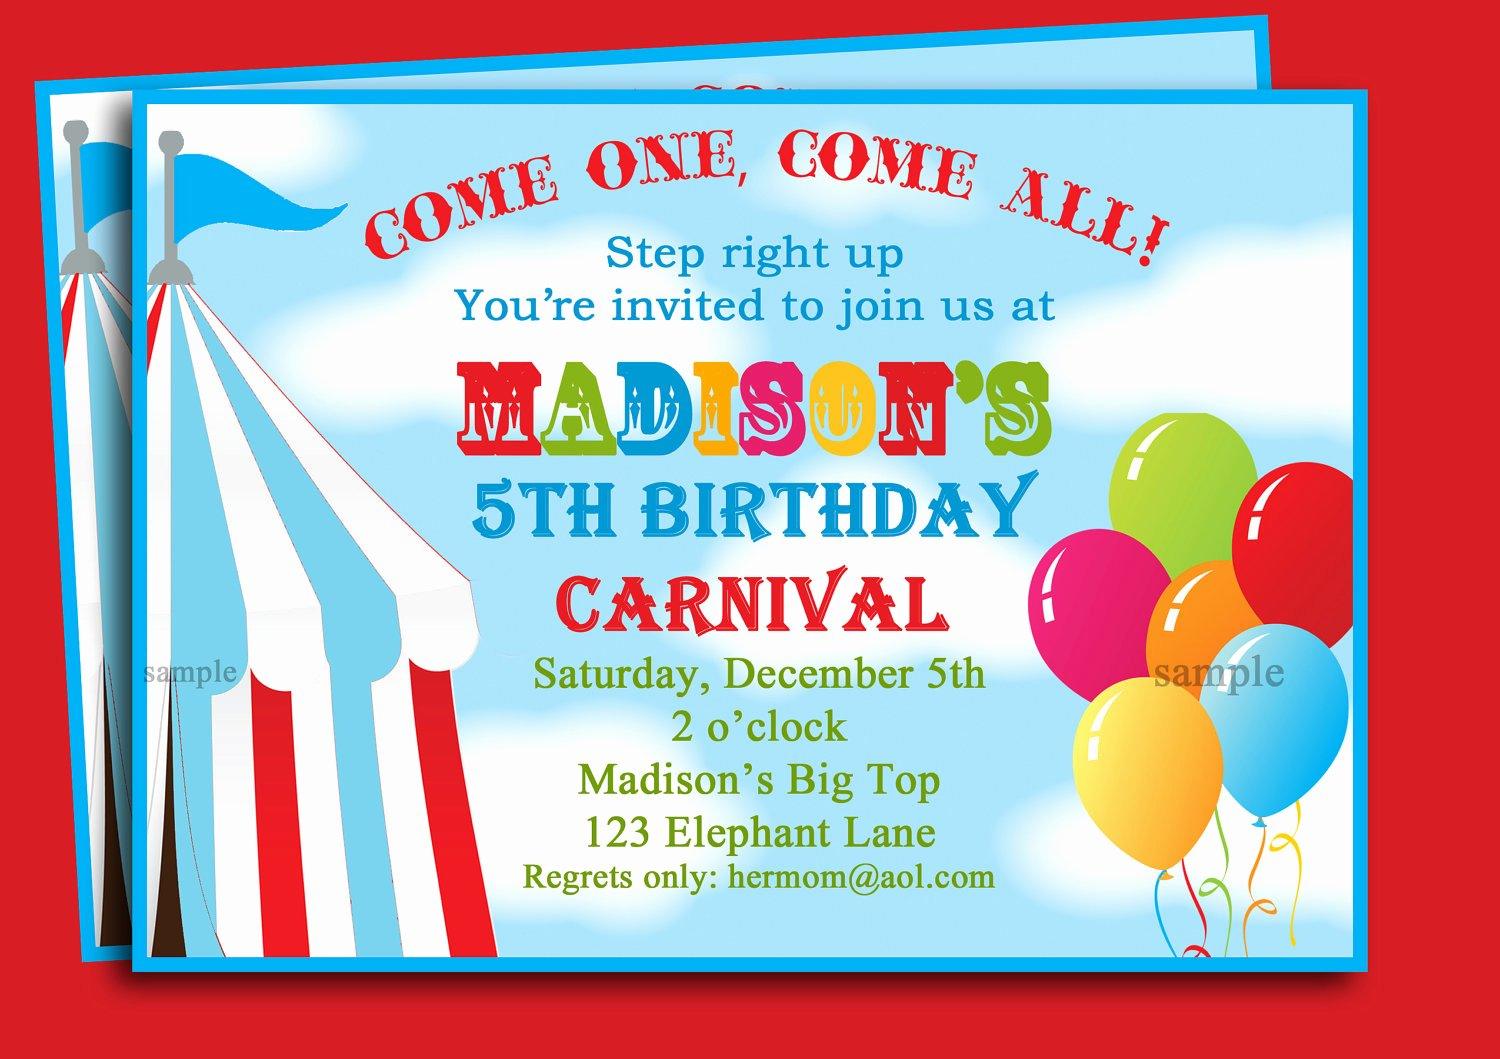 Carnival Invitation Template Free Lovely Free Printable Carnival Birthday Party Invitations Free Invitation Templates Drevio